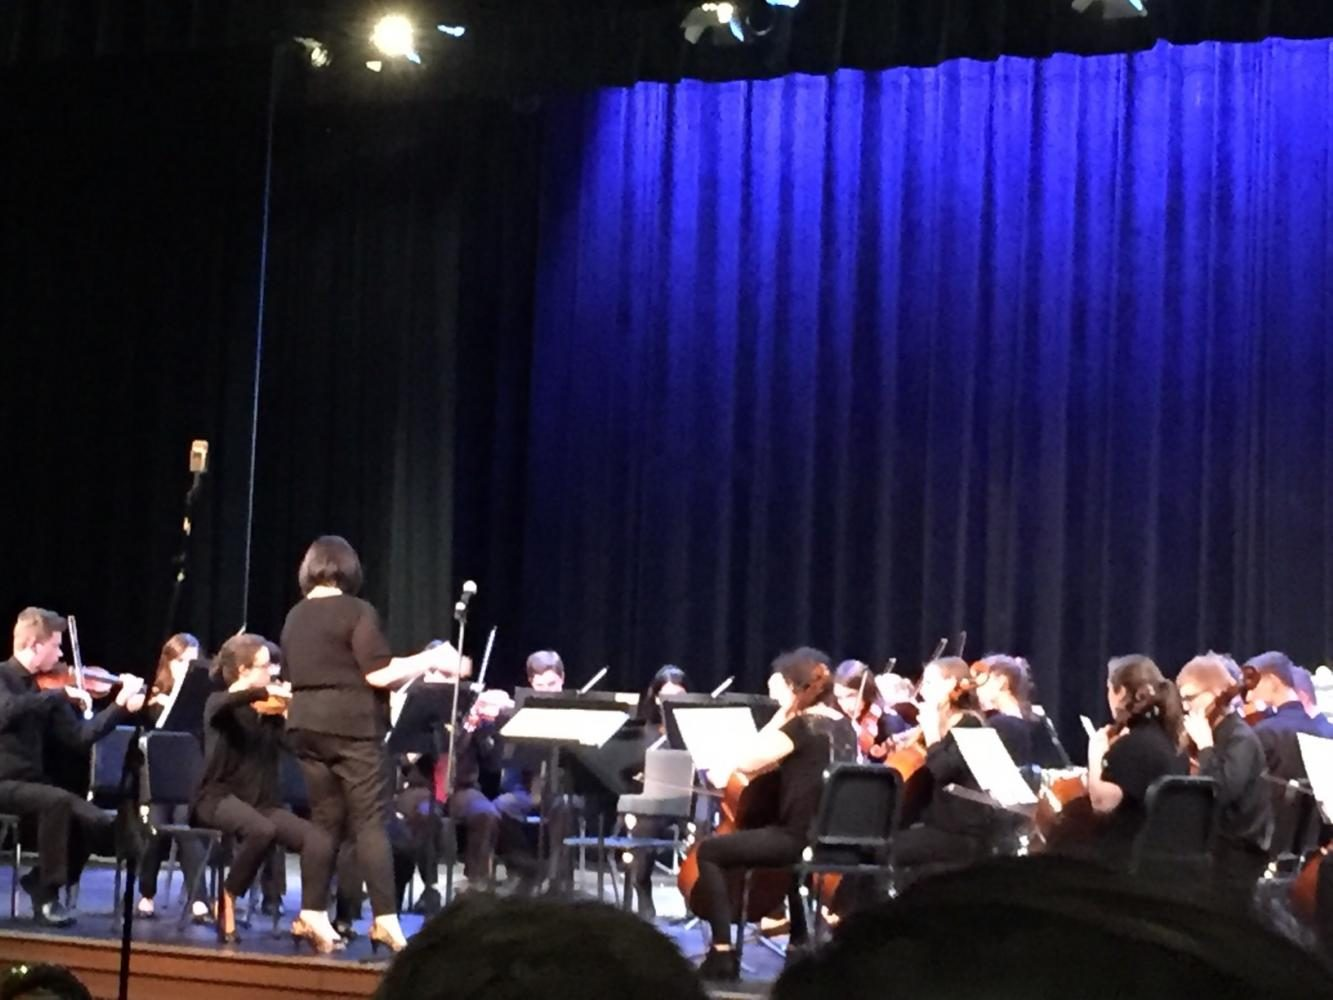 Ms.+Sassano%27s+chamber+winds+stringing+the+audience+along+with+their+encore+Pirates+of+the+Caribbean.+